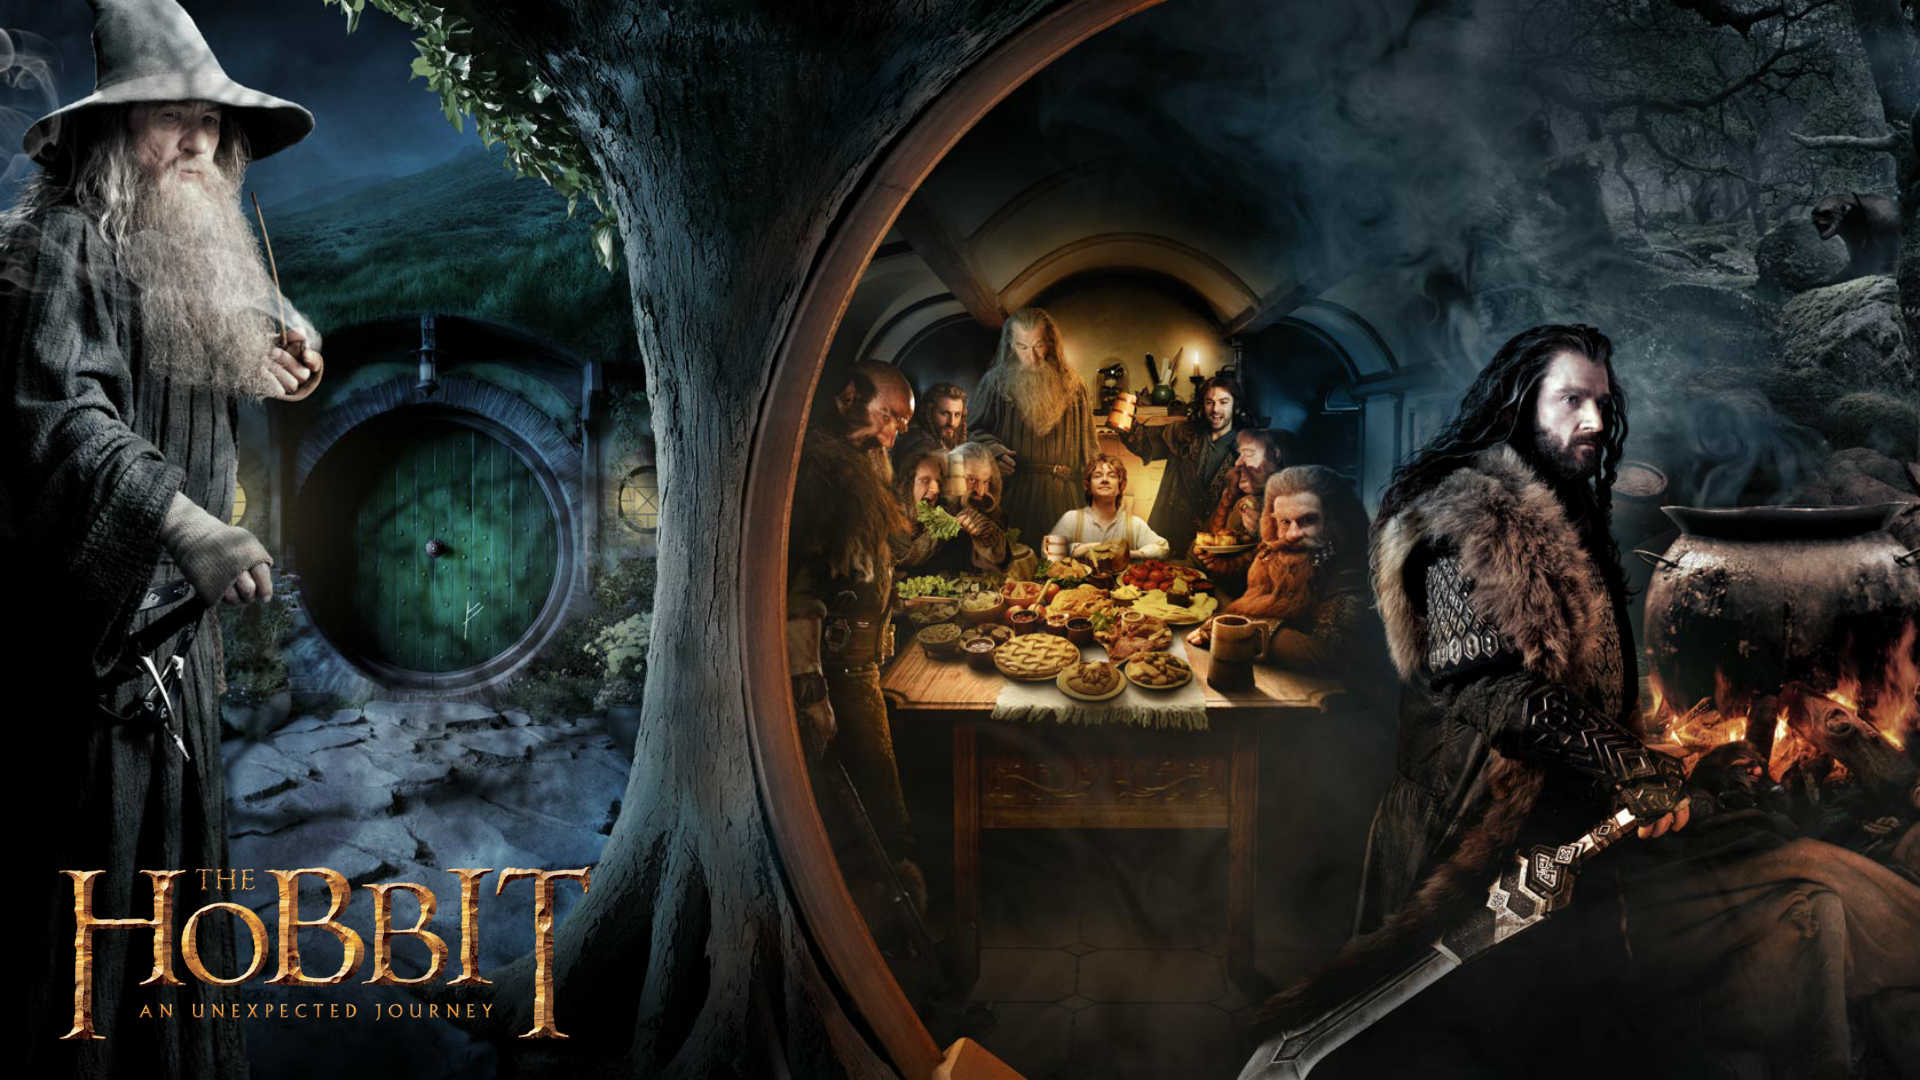 The Hobbit Desktop wallpapers 1920x1080 4 1920x1080